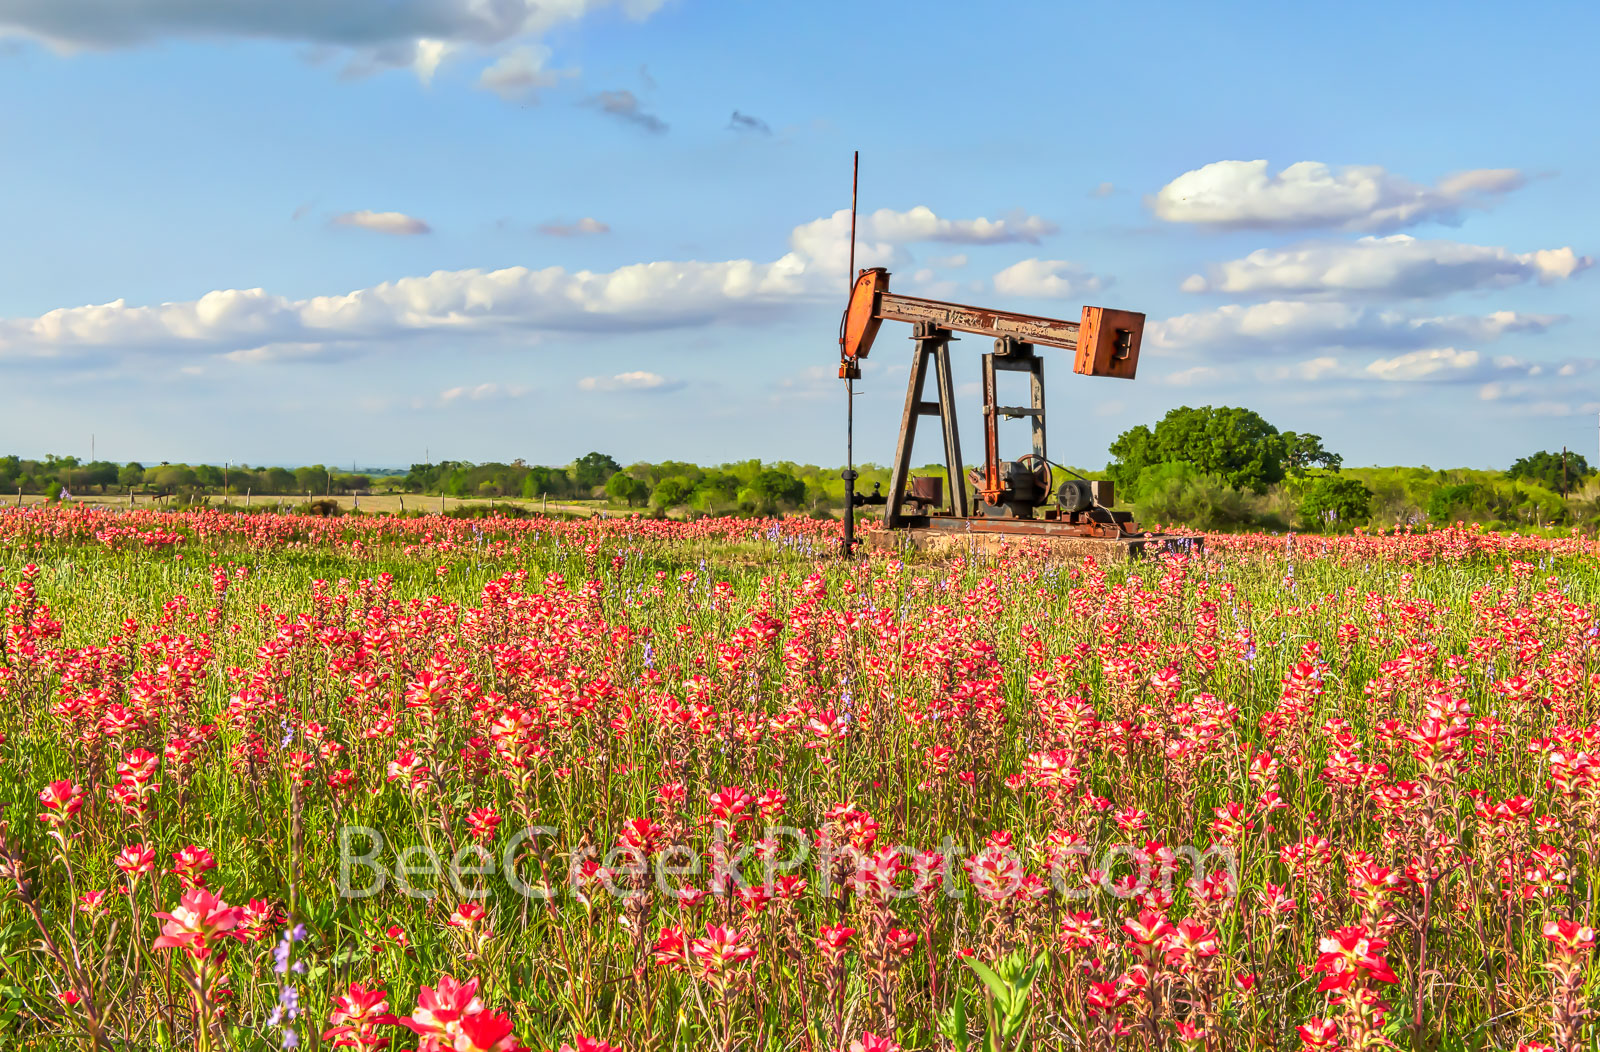 Texas Wildflowers with Oil Derrick - Oil well derrick with indian paintbrush and other wildflowers, who say they can't work together...